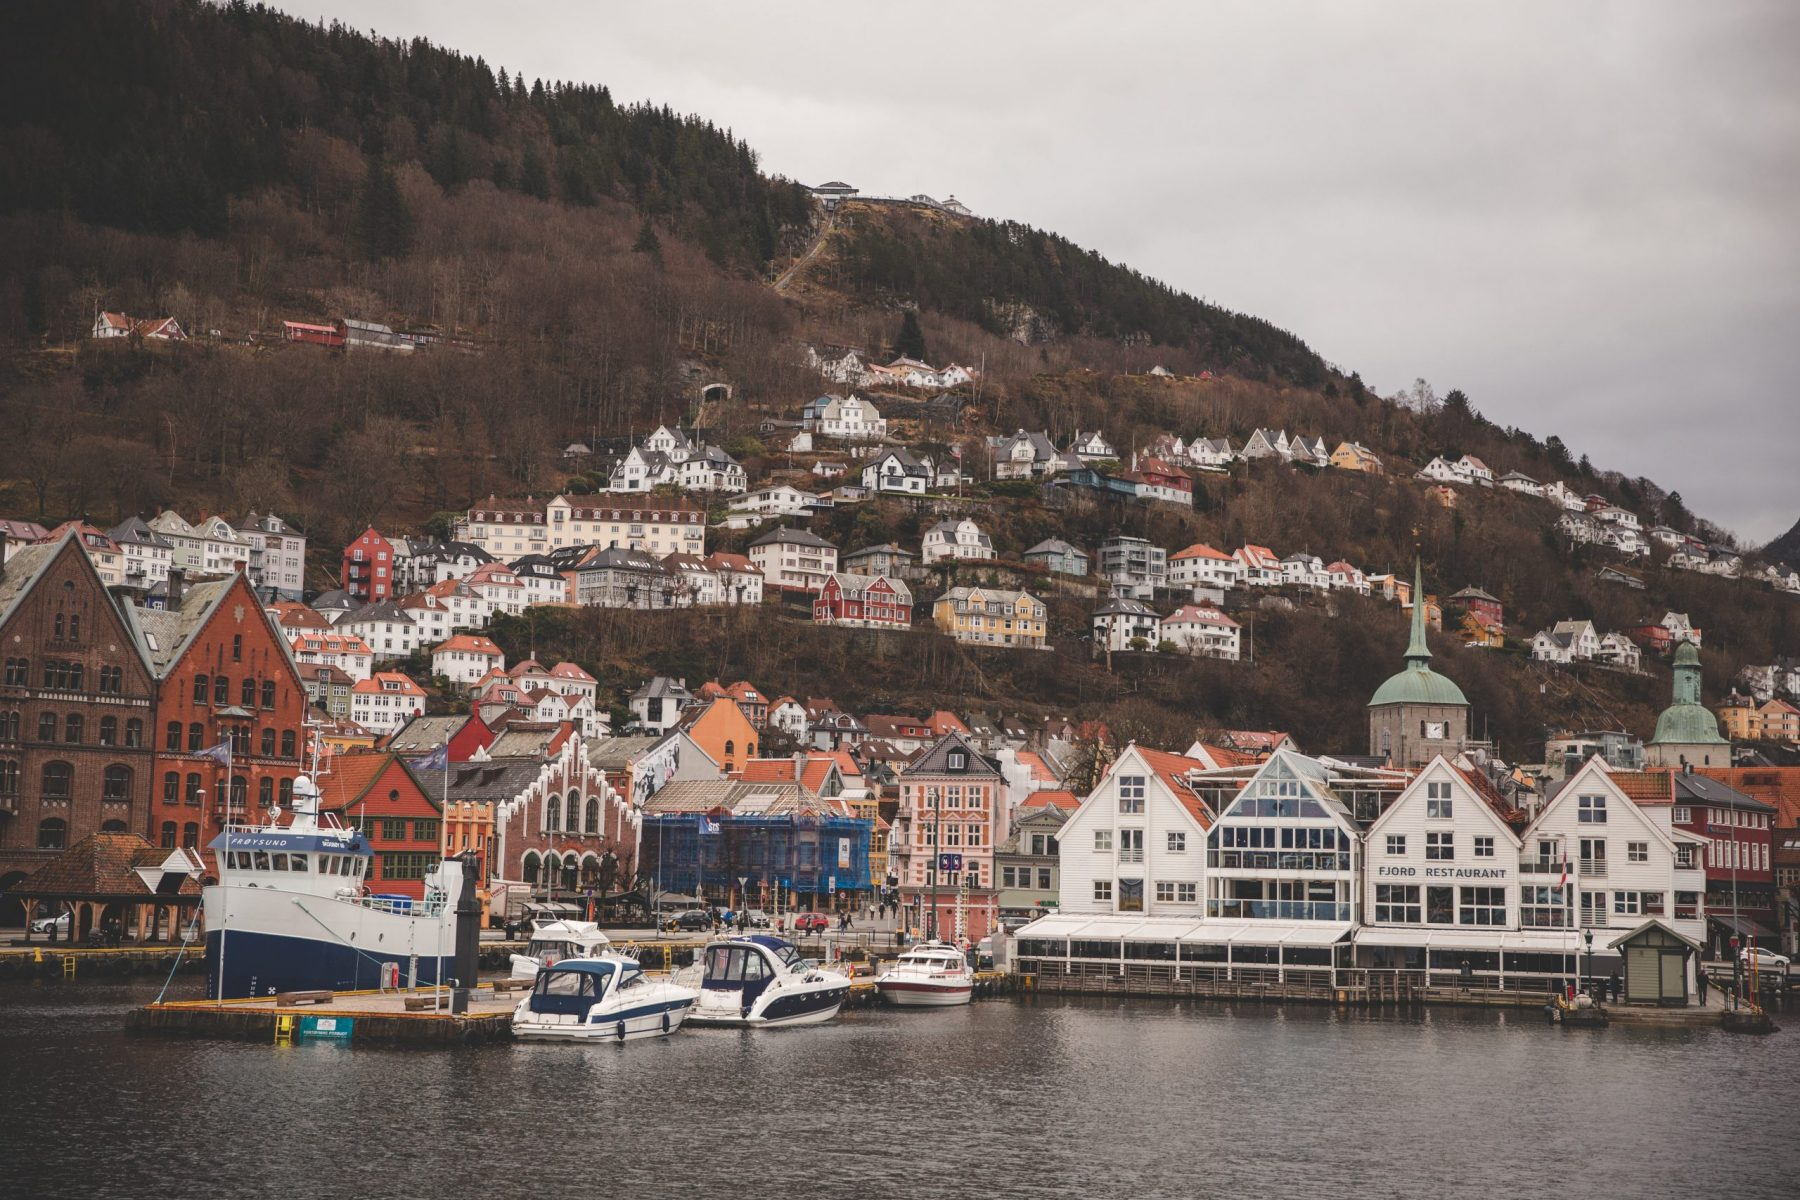 The harbor in Bergen, Norway as seen from the fjord cruise